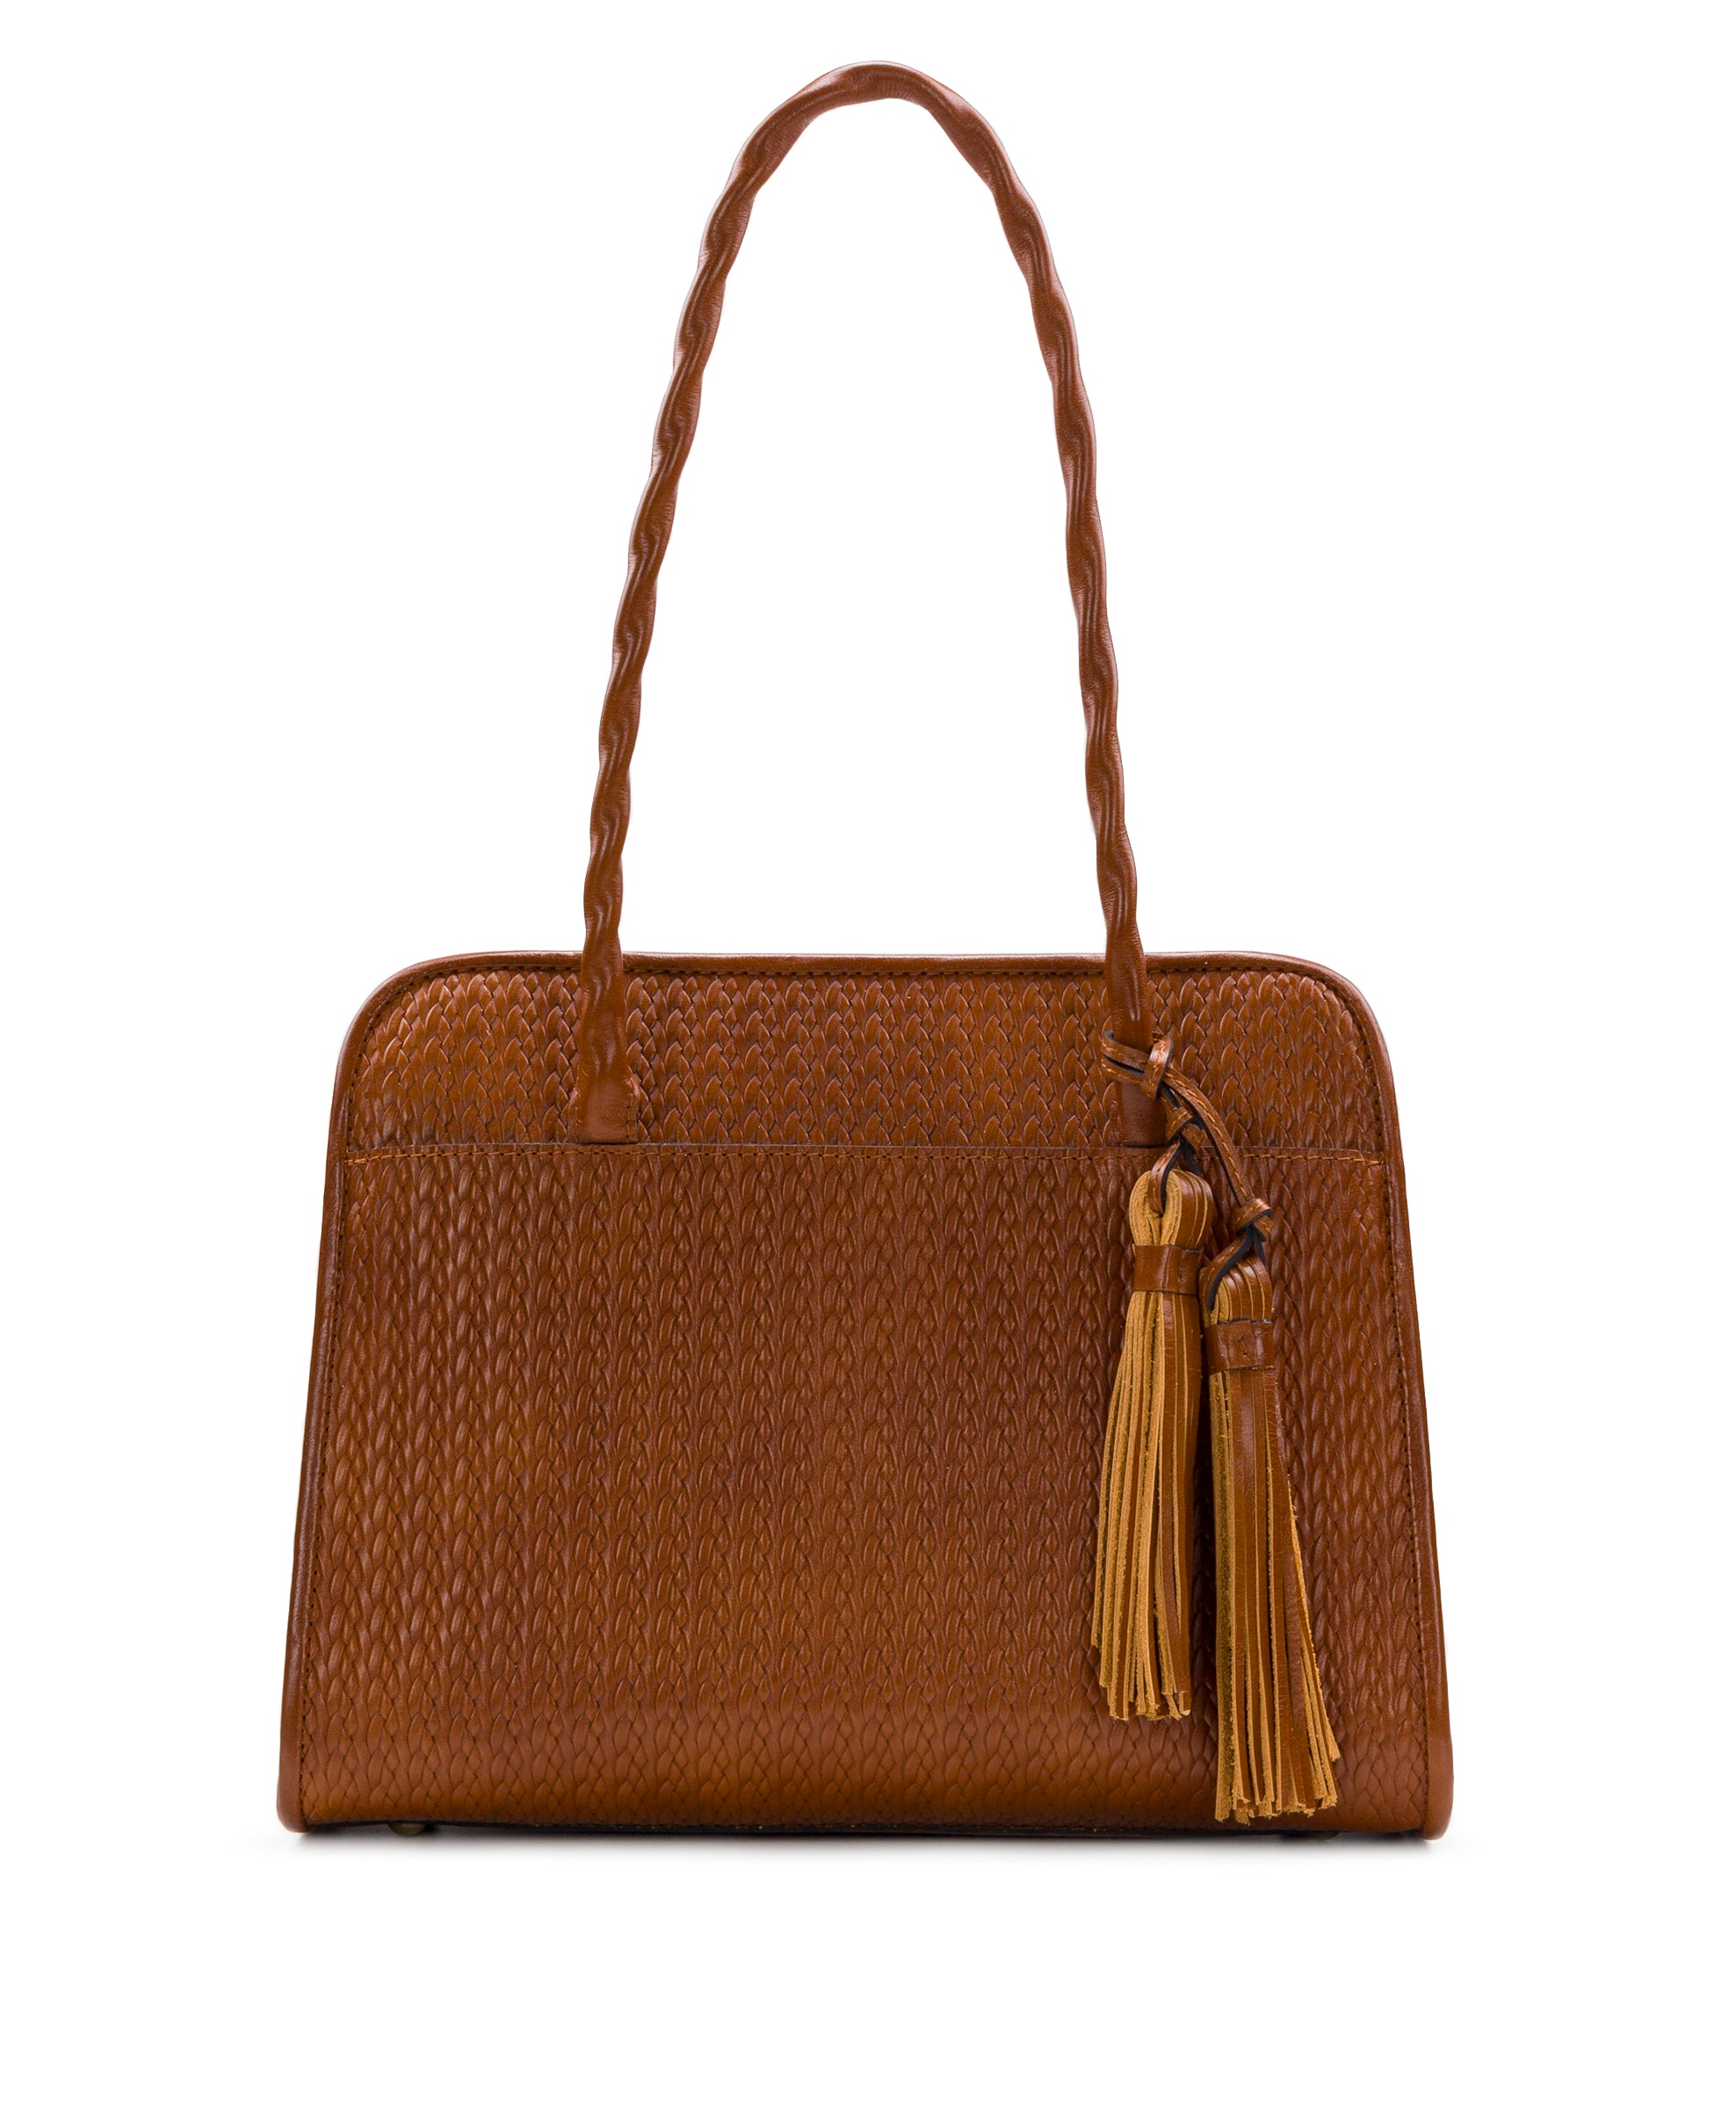 Paris Large Satchel - Twisted Woven Embossed